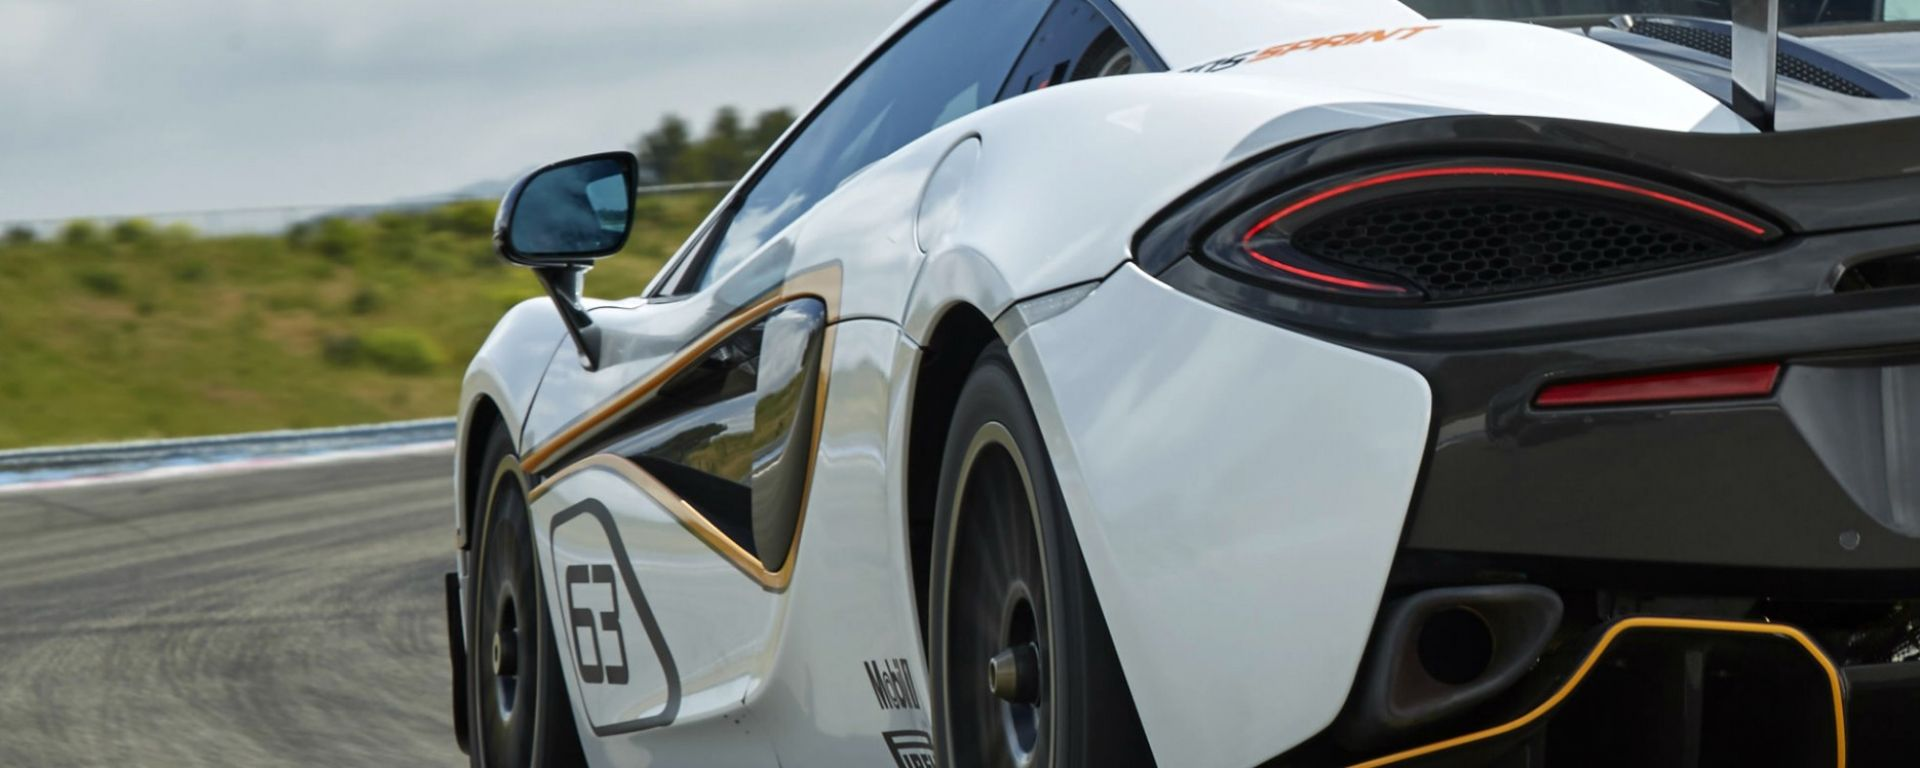 McLaren 570S Sprint: debutto al Goodwood Festival of Speed